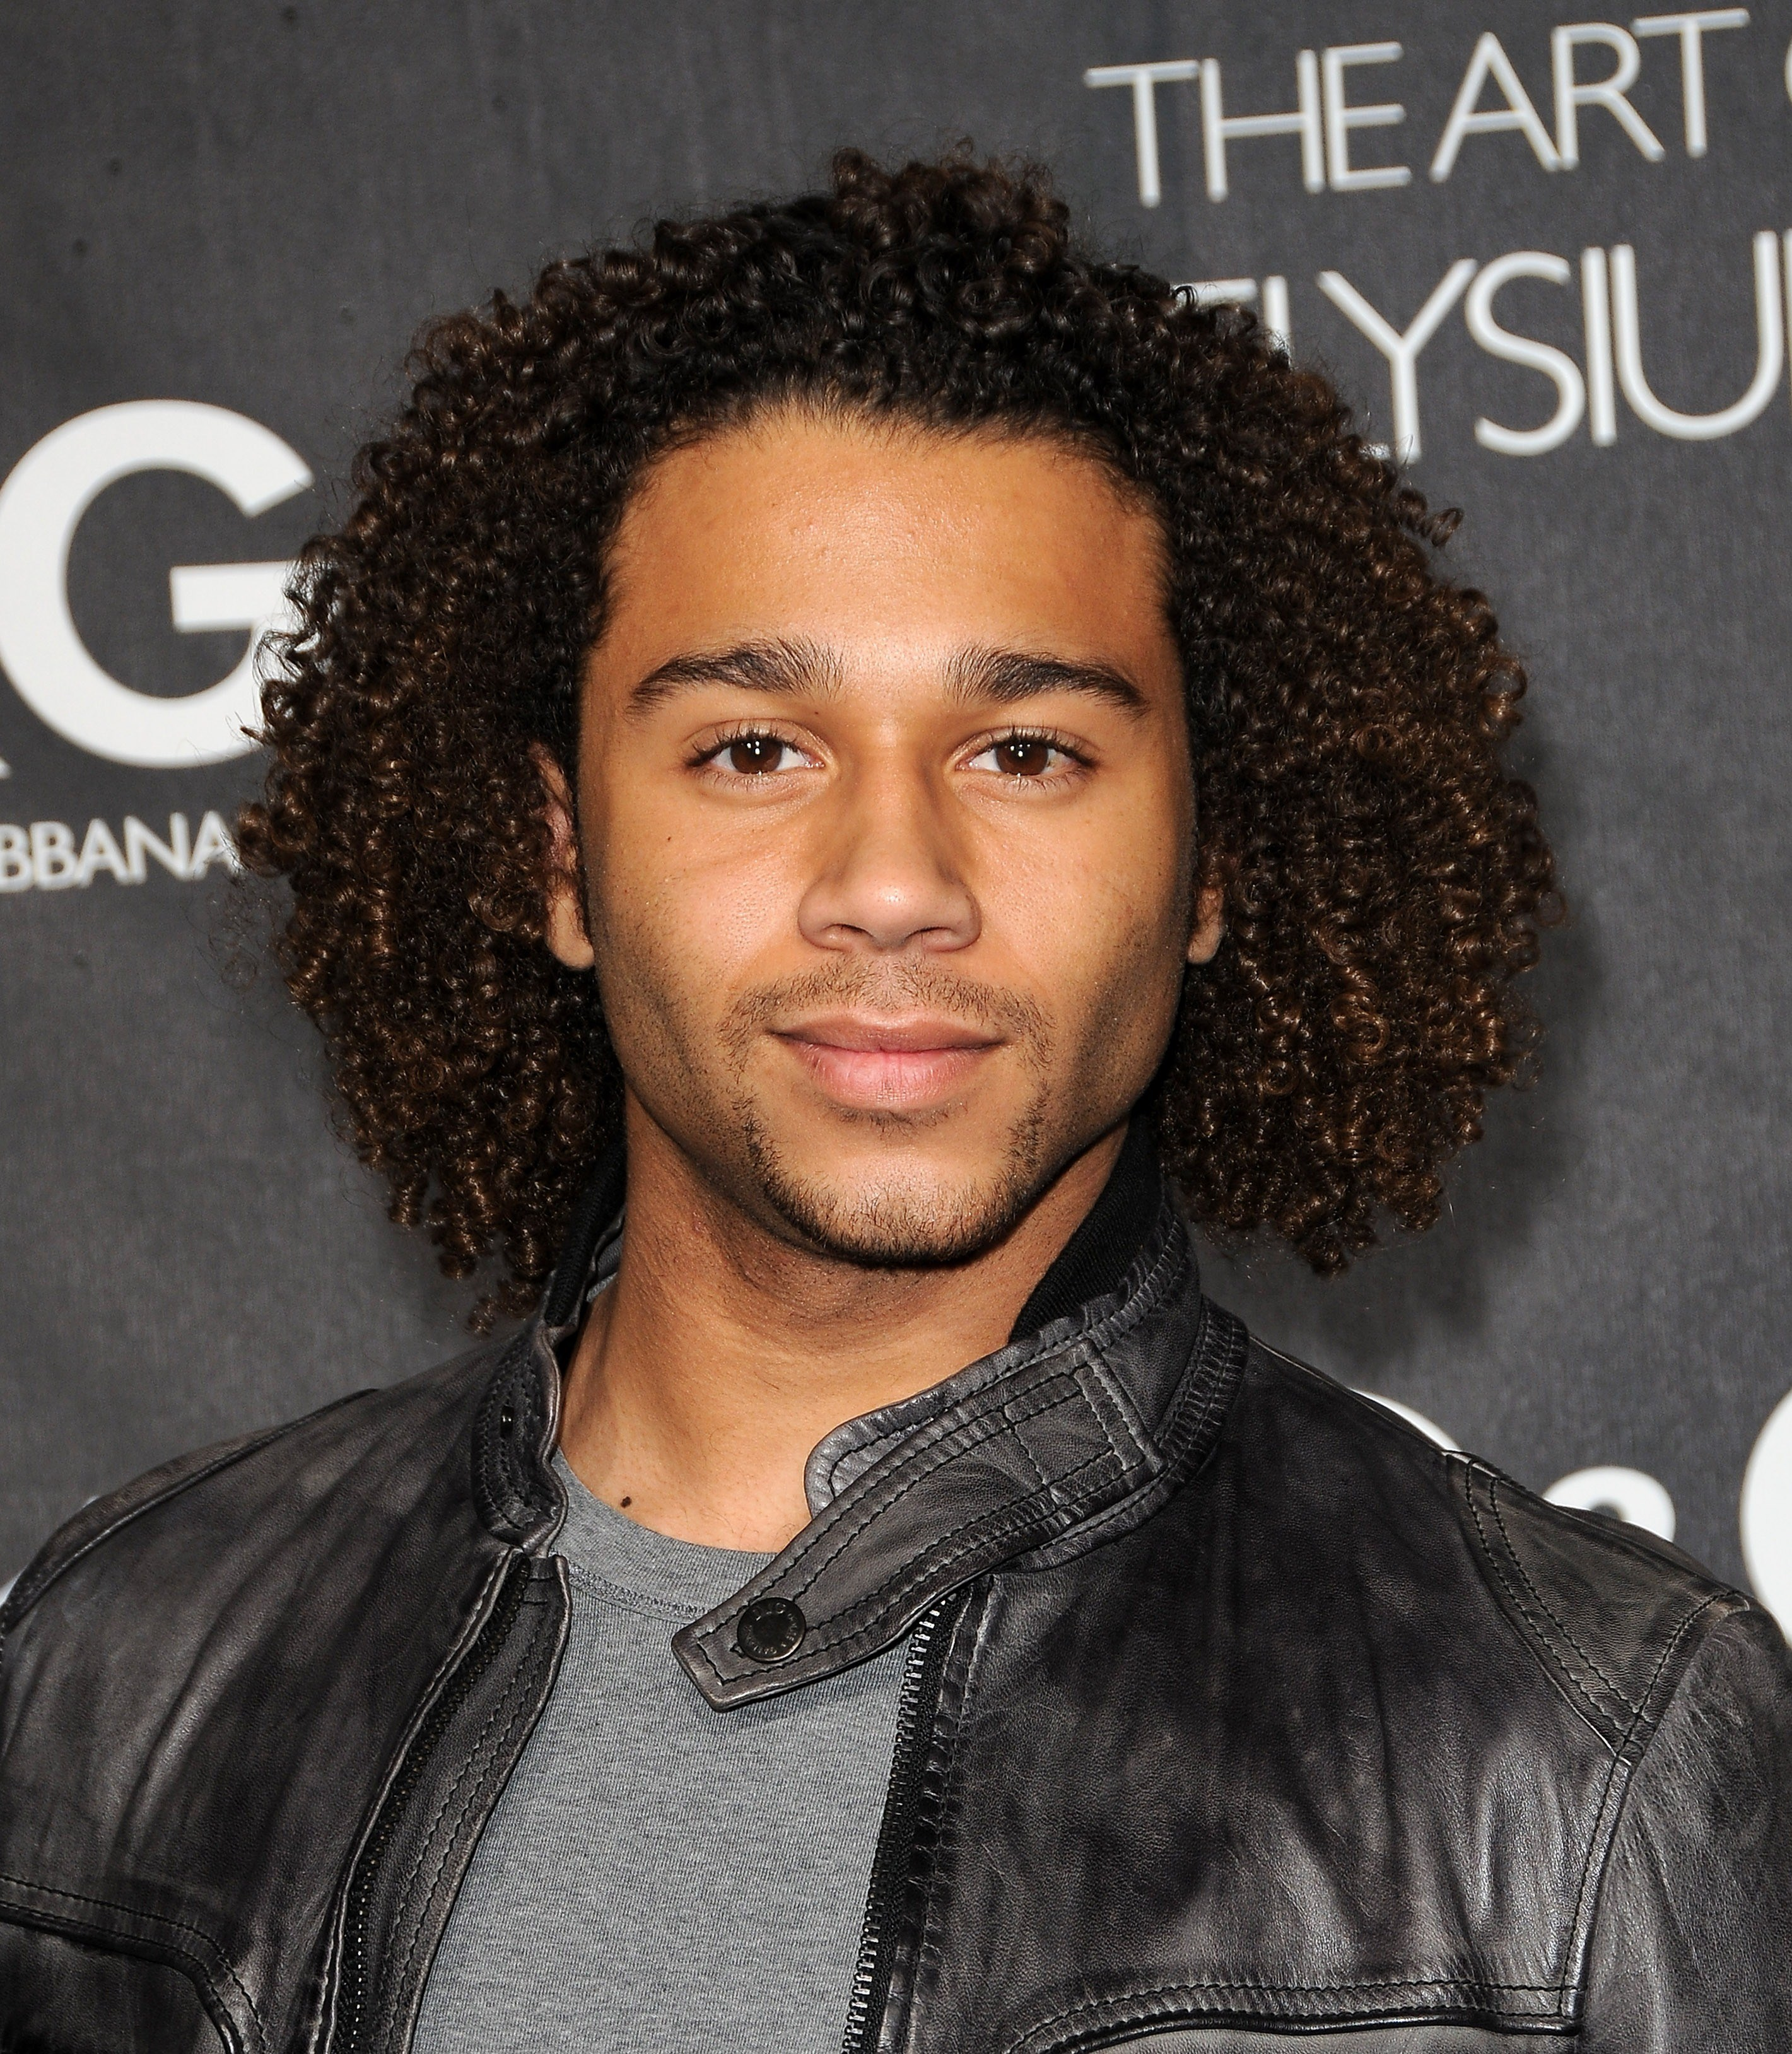 Corbin Bleu | Known people - famous people news and biographies